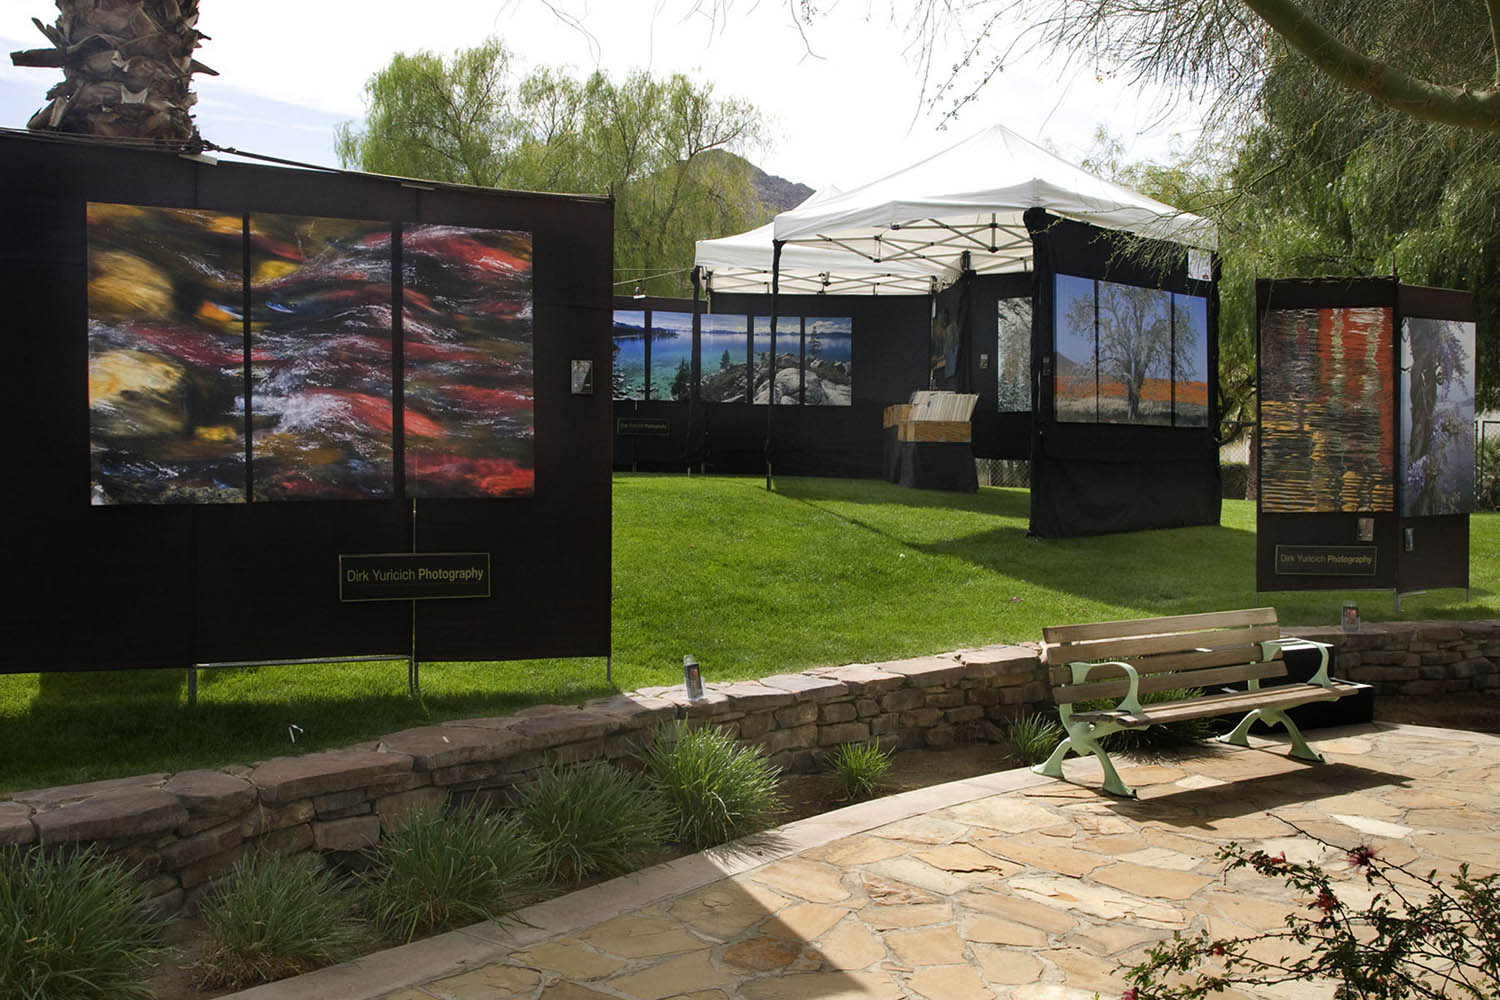 We set up at Art Festivals and Shows, usually outdoors. This is our booth at the La Quinta Arts Festival.